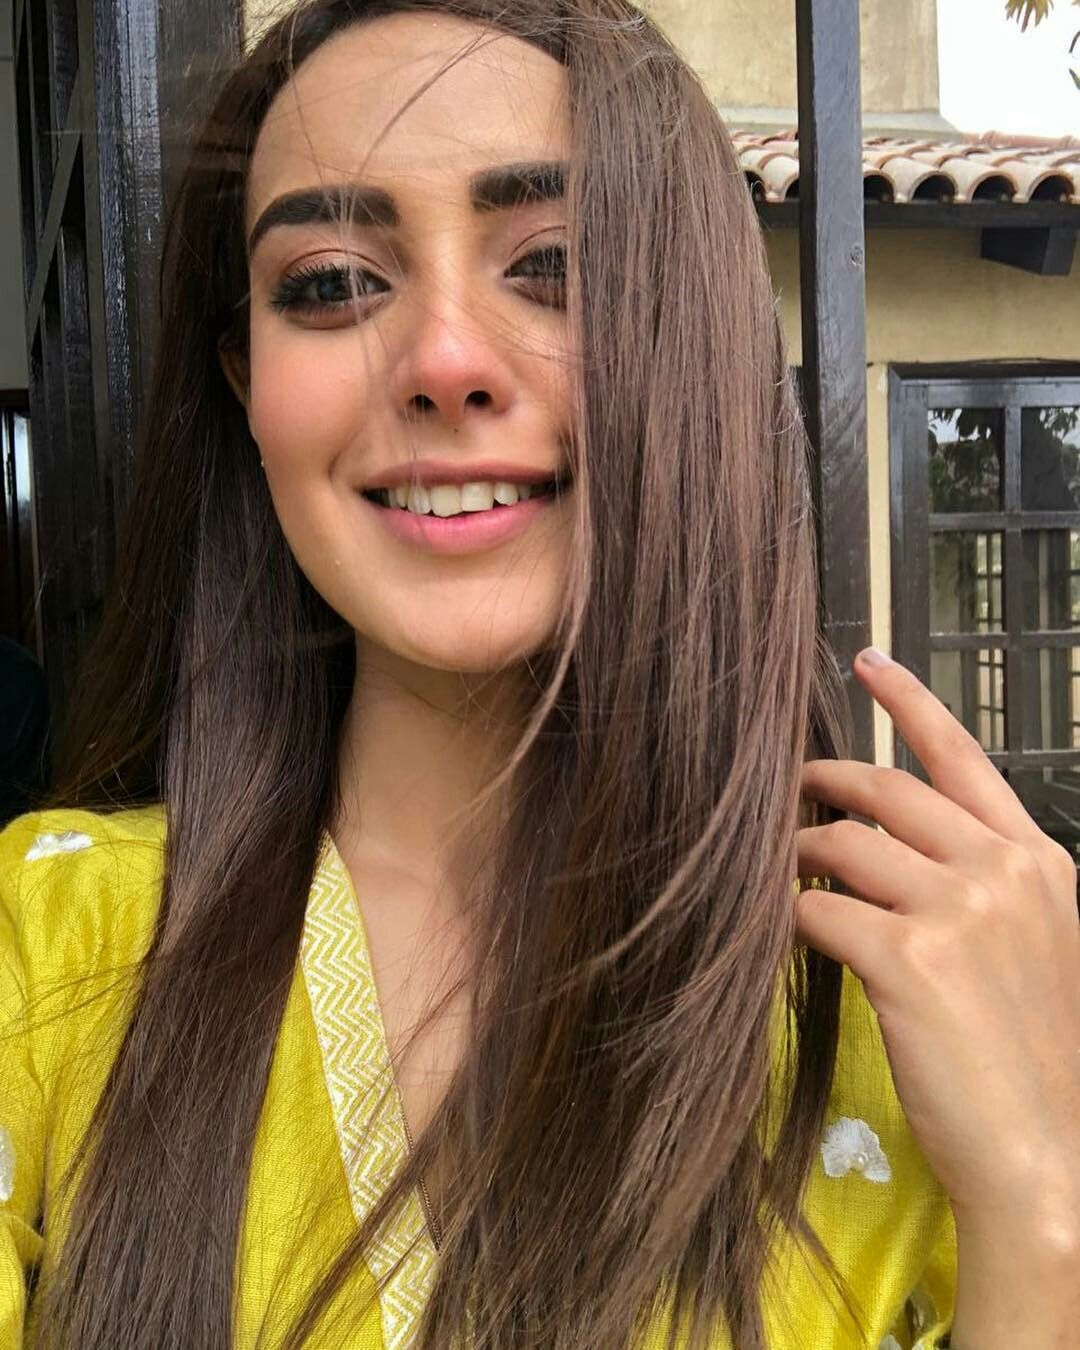 Pin by Asma Mujeer ∞ on Celebrities in 2019 | Iqra aziz